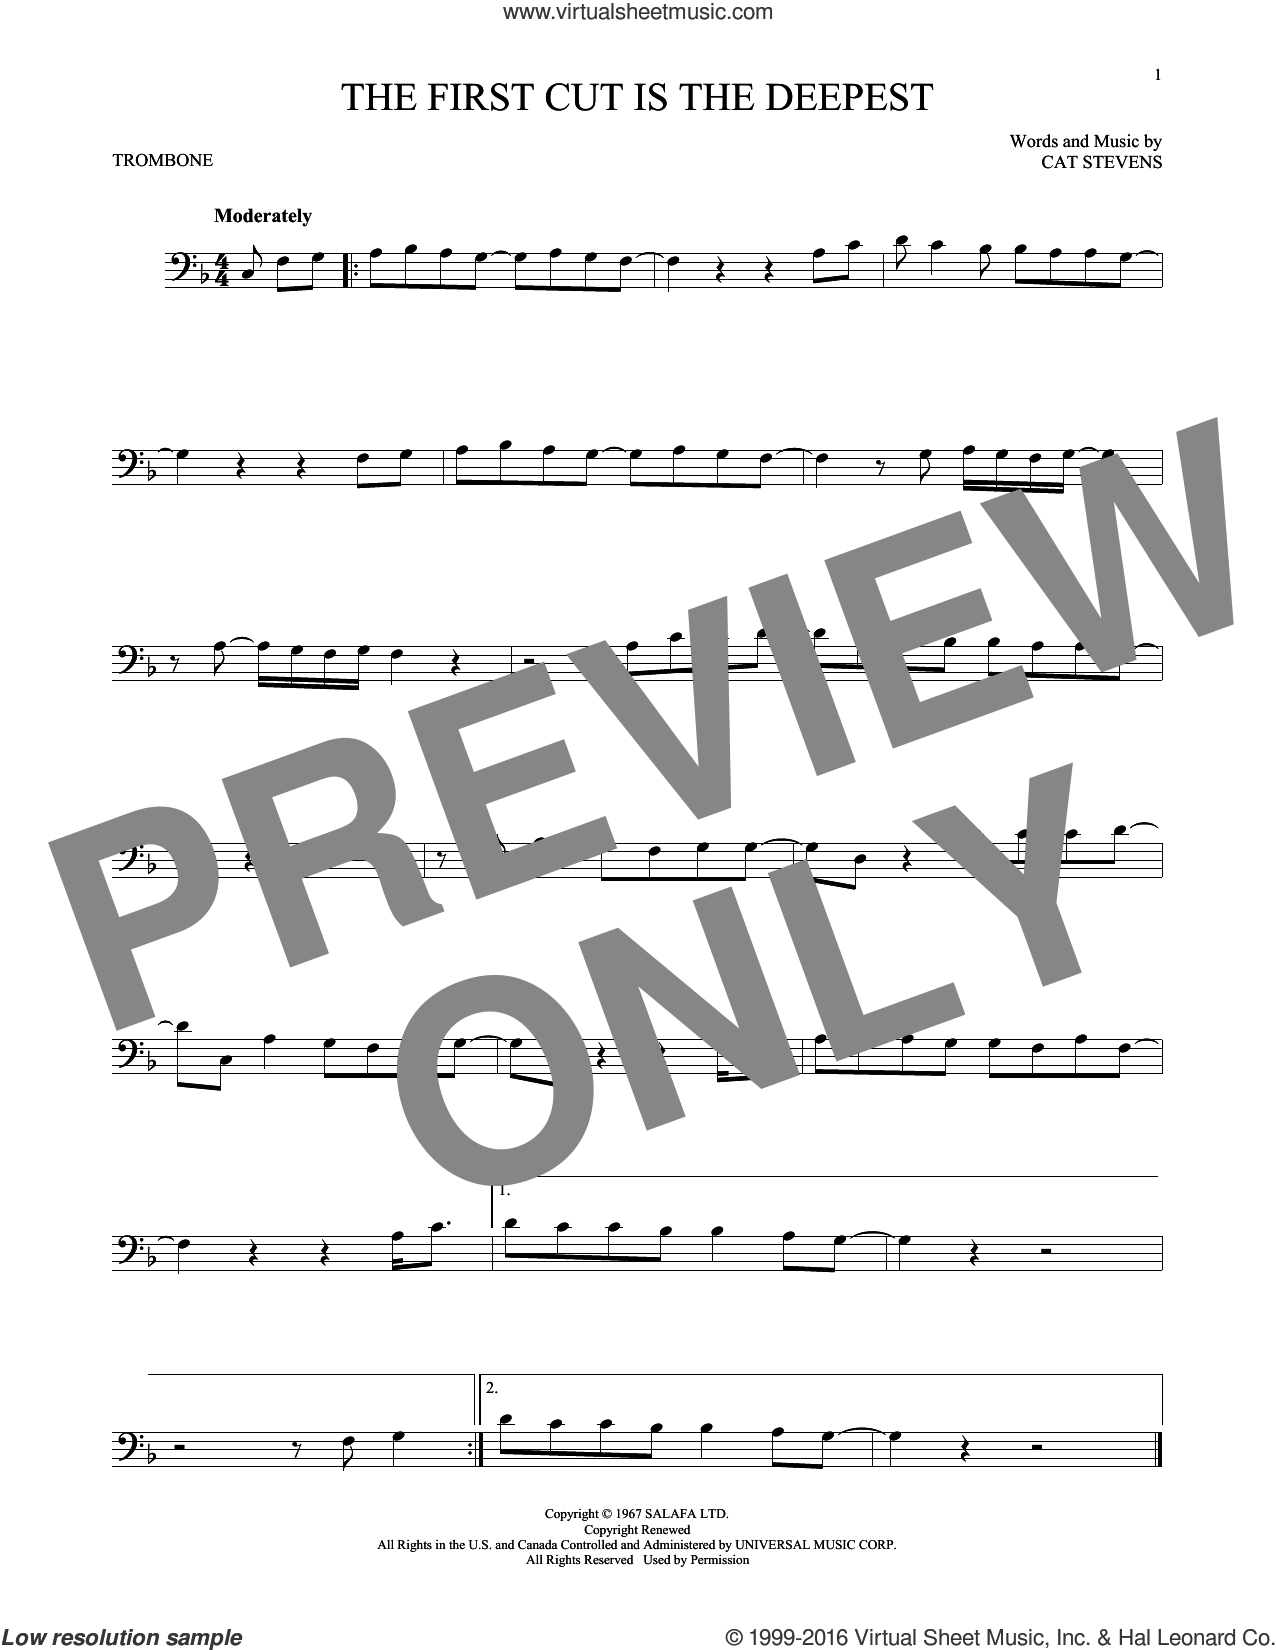 The First Cut Is The Deepest sheet music for trombone solo by Cat Stevens, Rod Stewart and Sheryl Crow, intermediate skill level